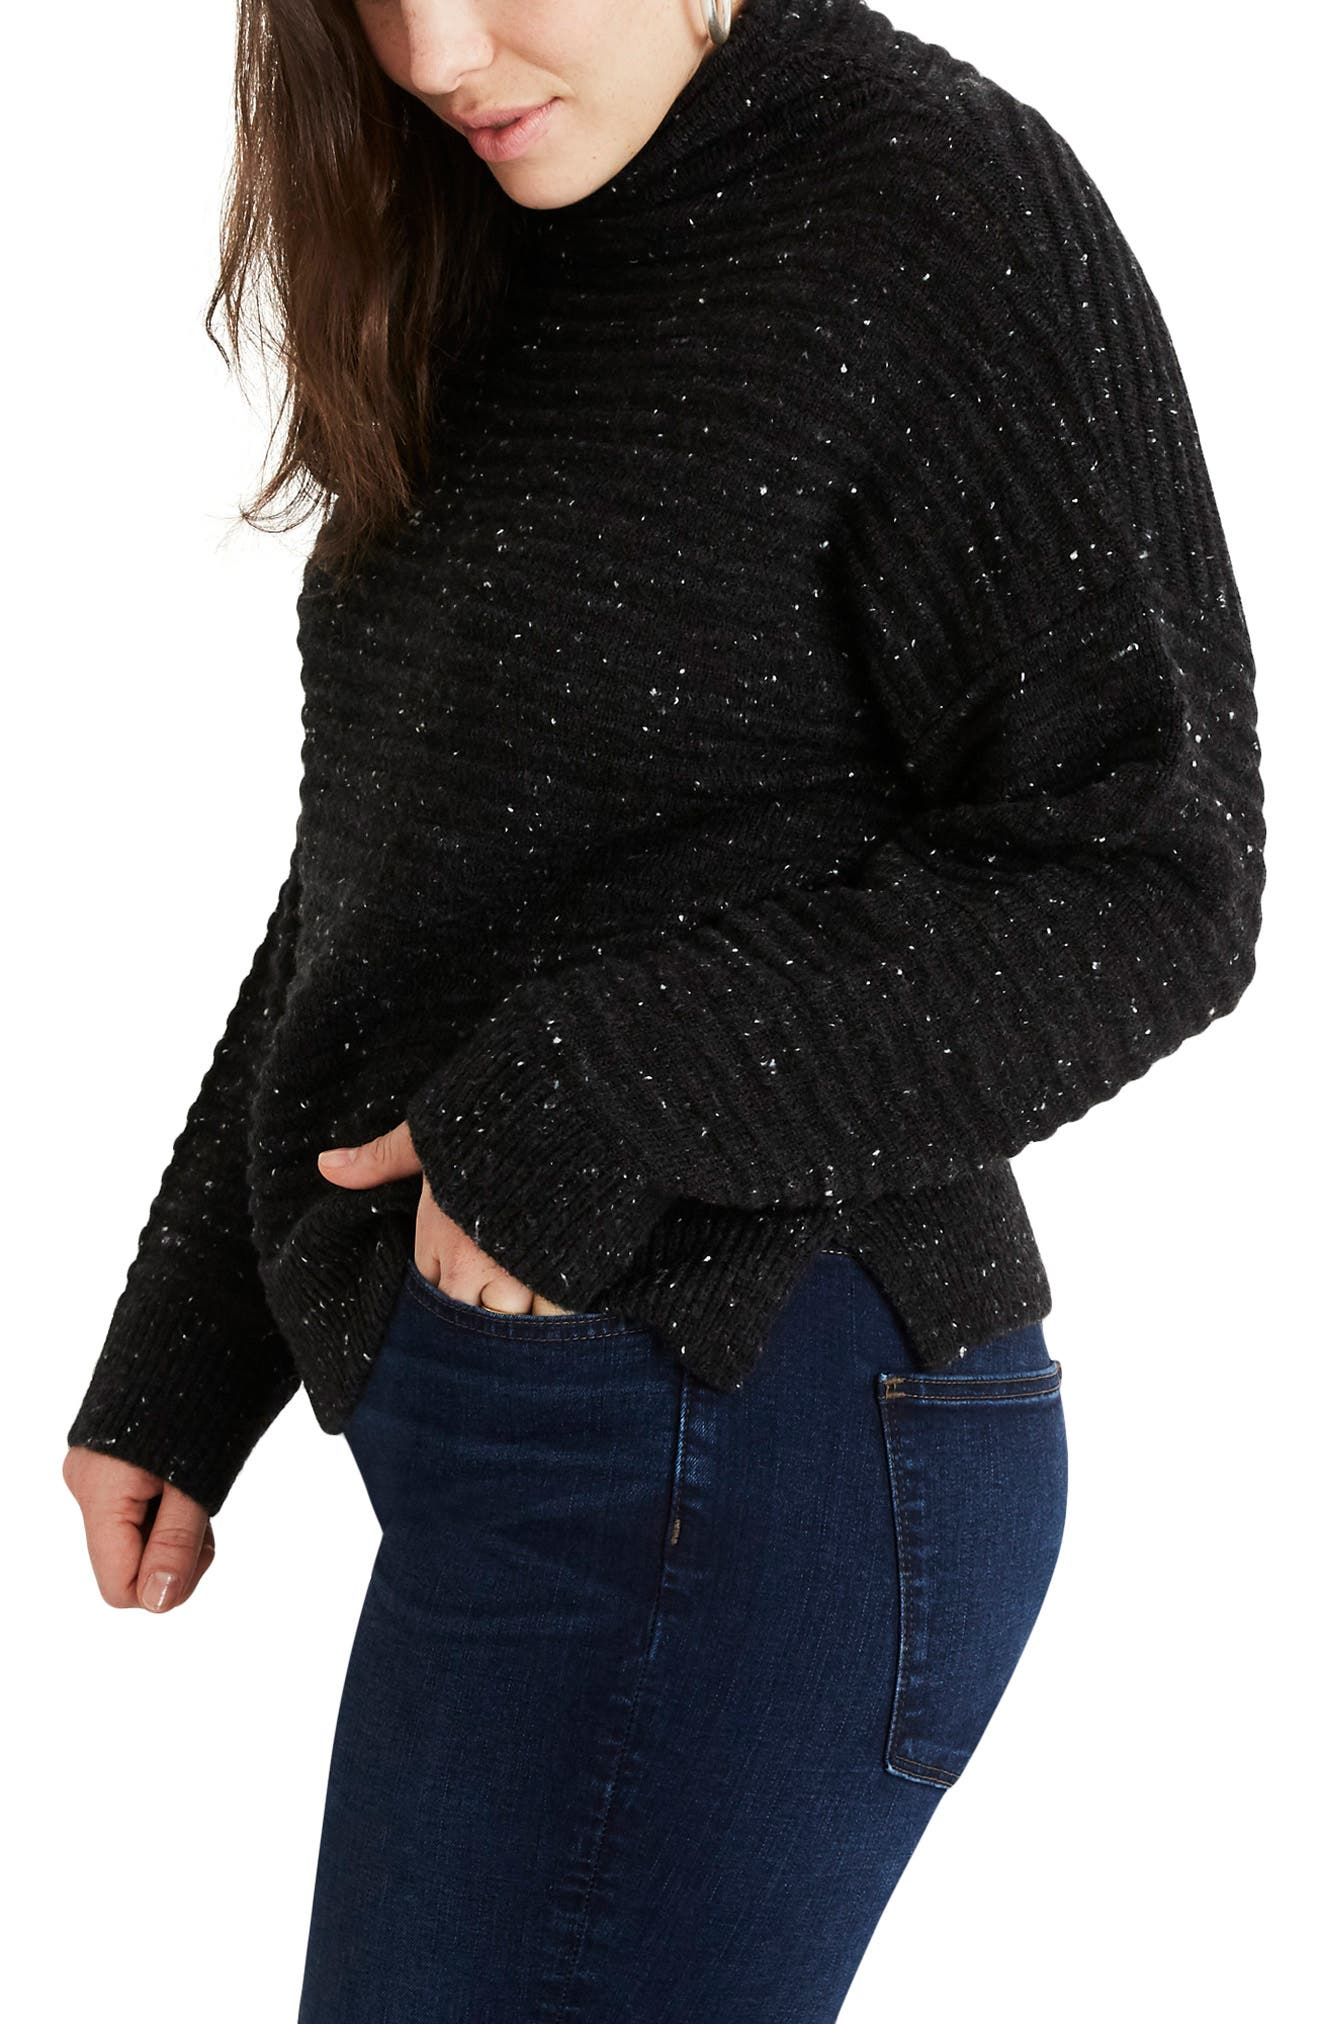 MADEWELL, Belmont Donegal Mock Neck Sweater, Alternate thumbnail 8, color, 020